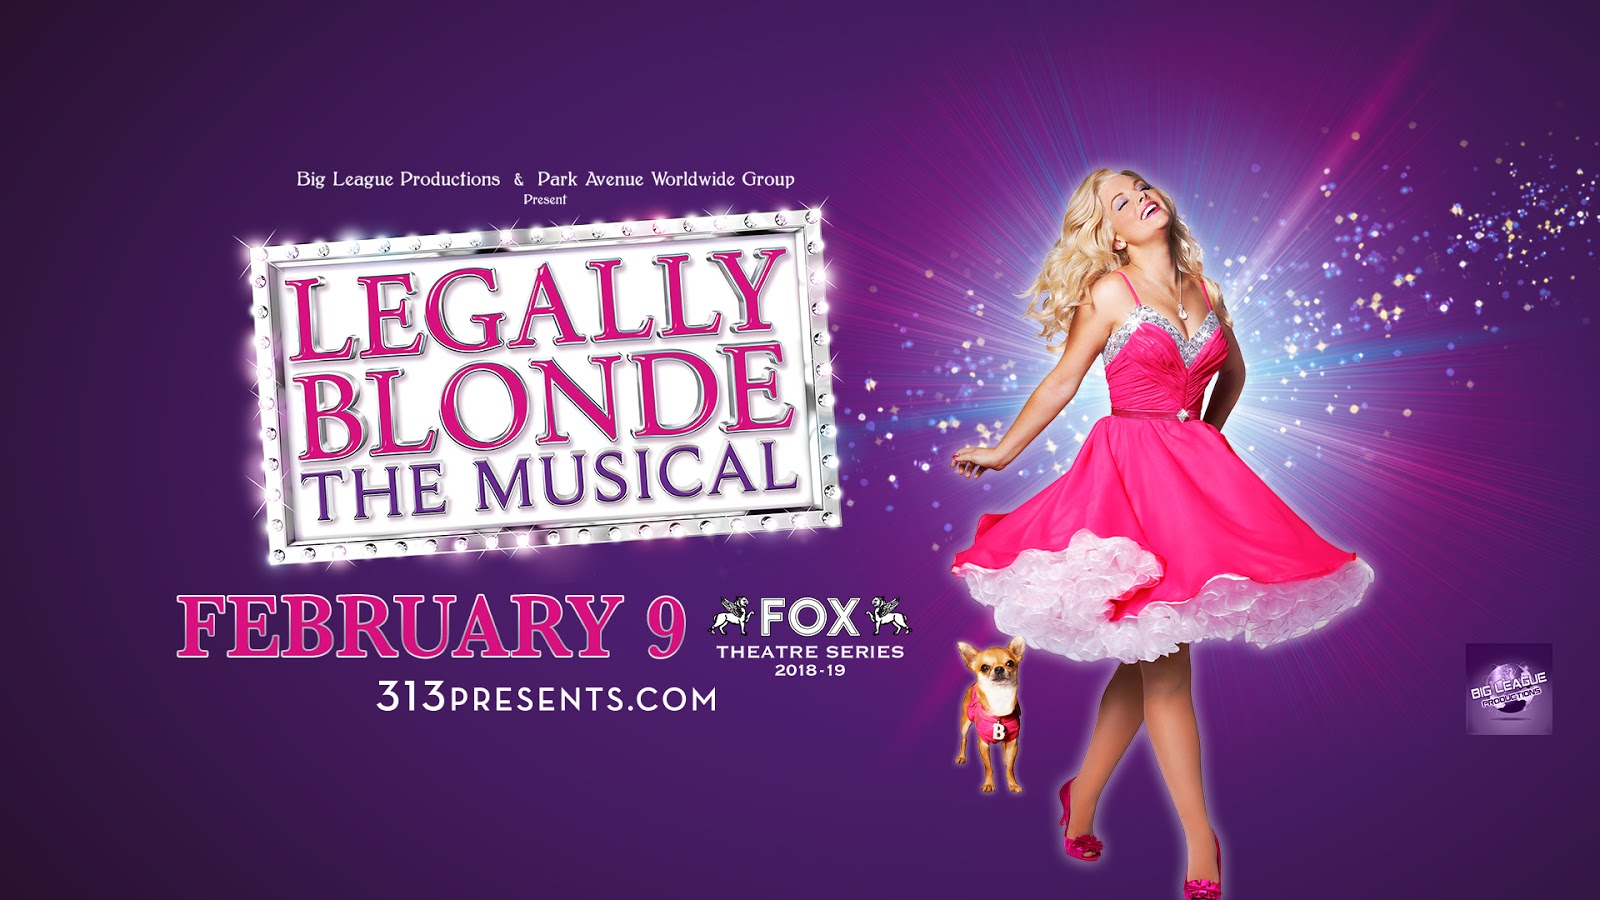 Upcoming and GIVEAWAY: Legally Blonde - The Musical, Feb. 9 at the Fox Theatre, Detroit {ends 1/14}